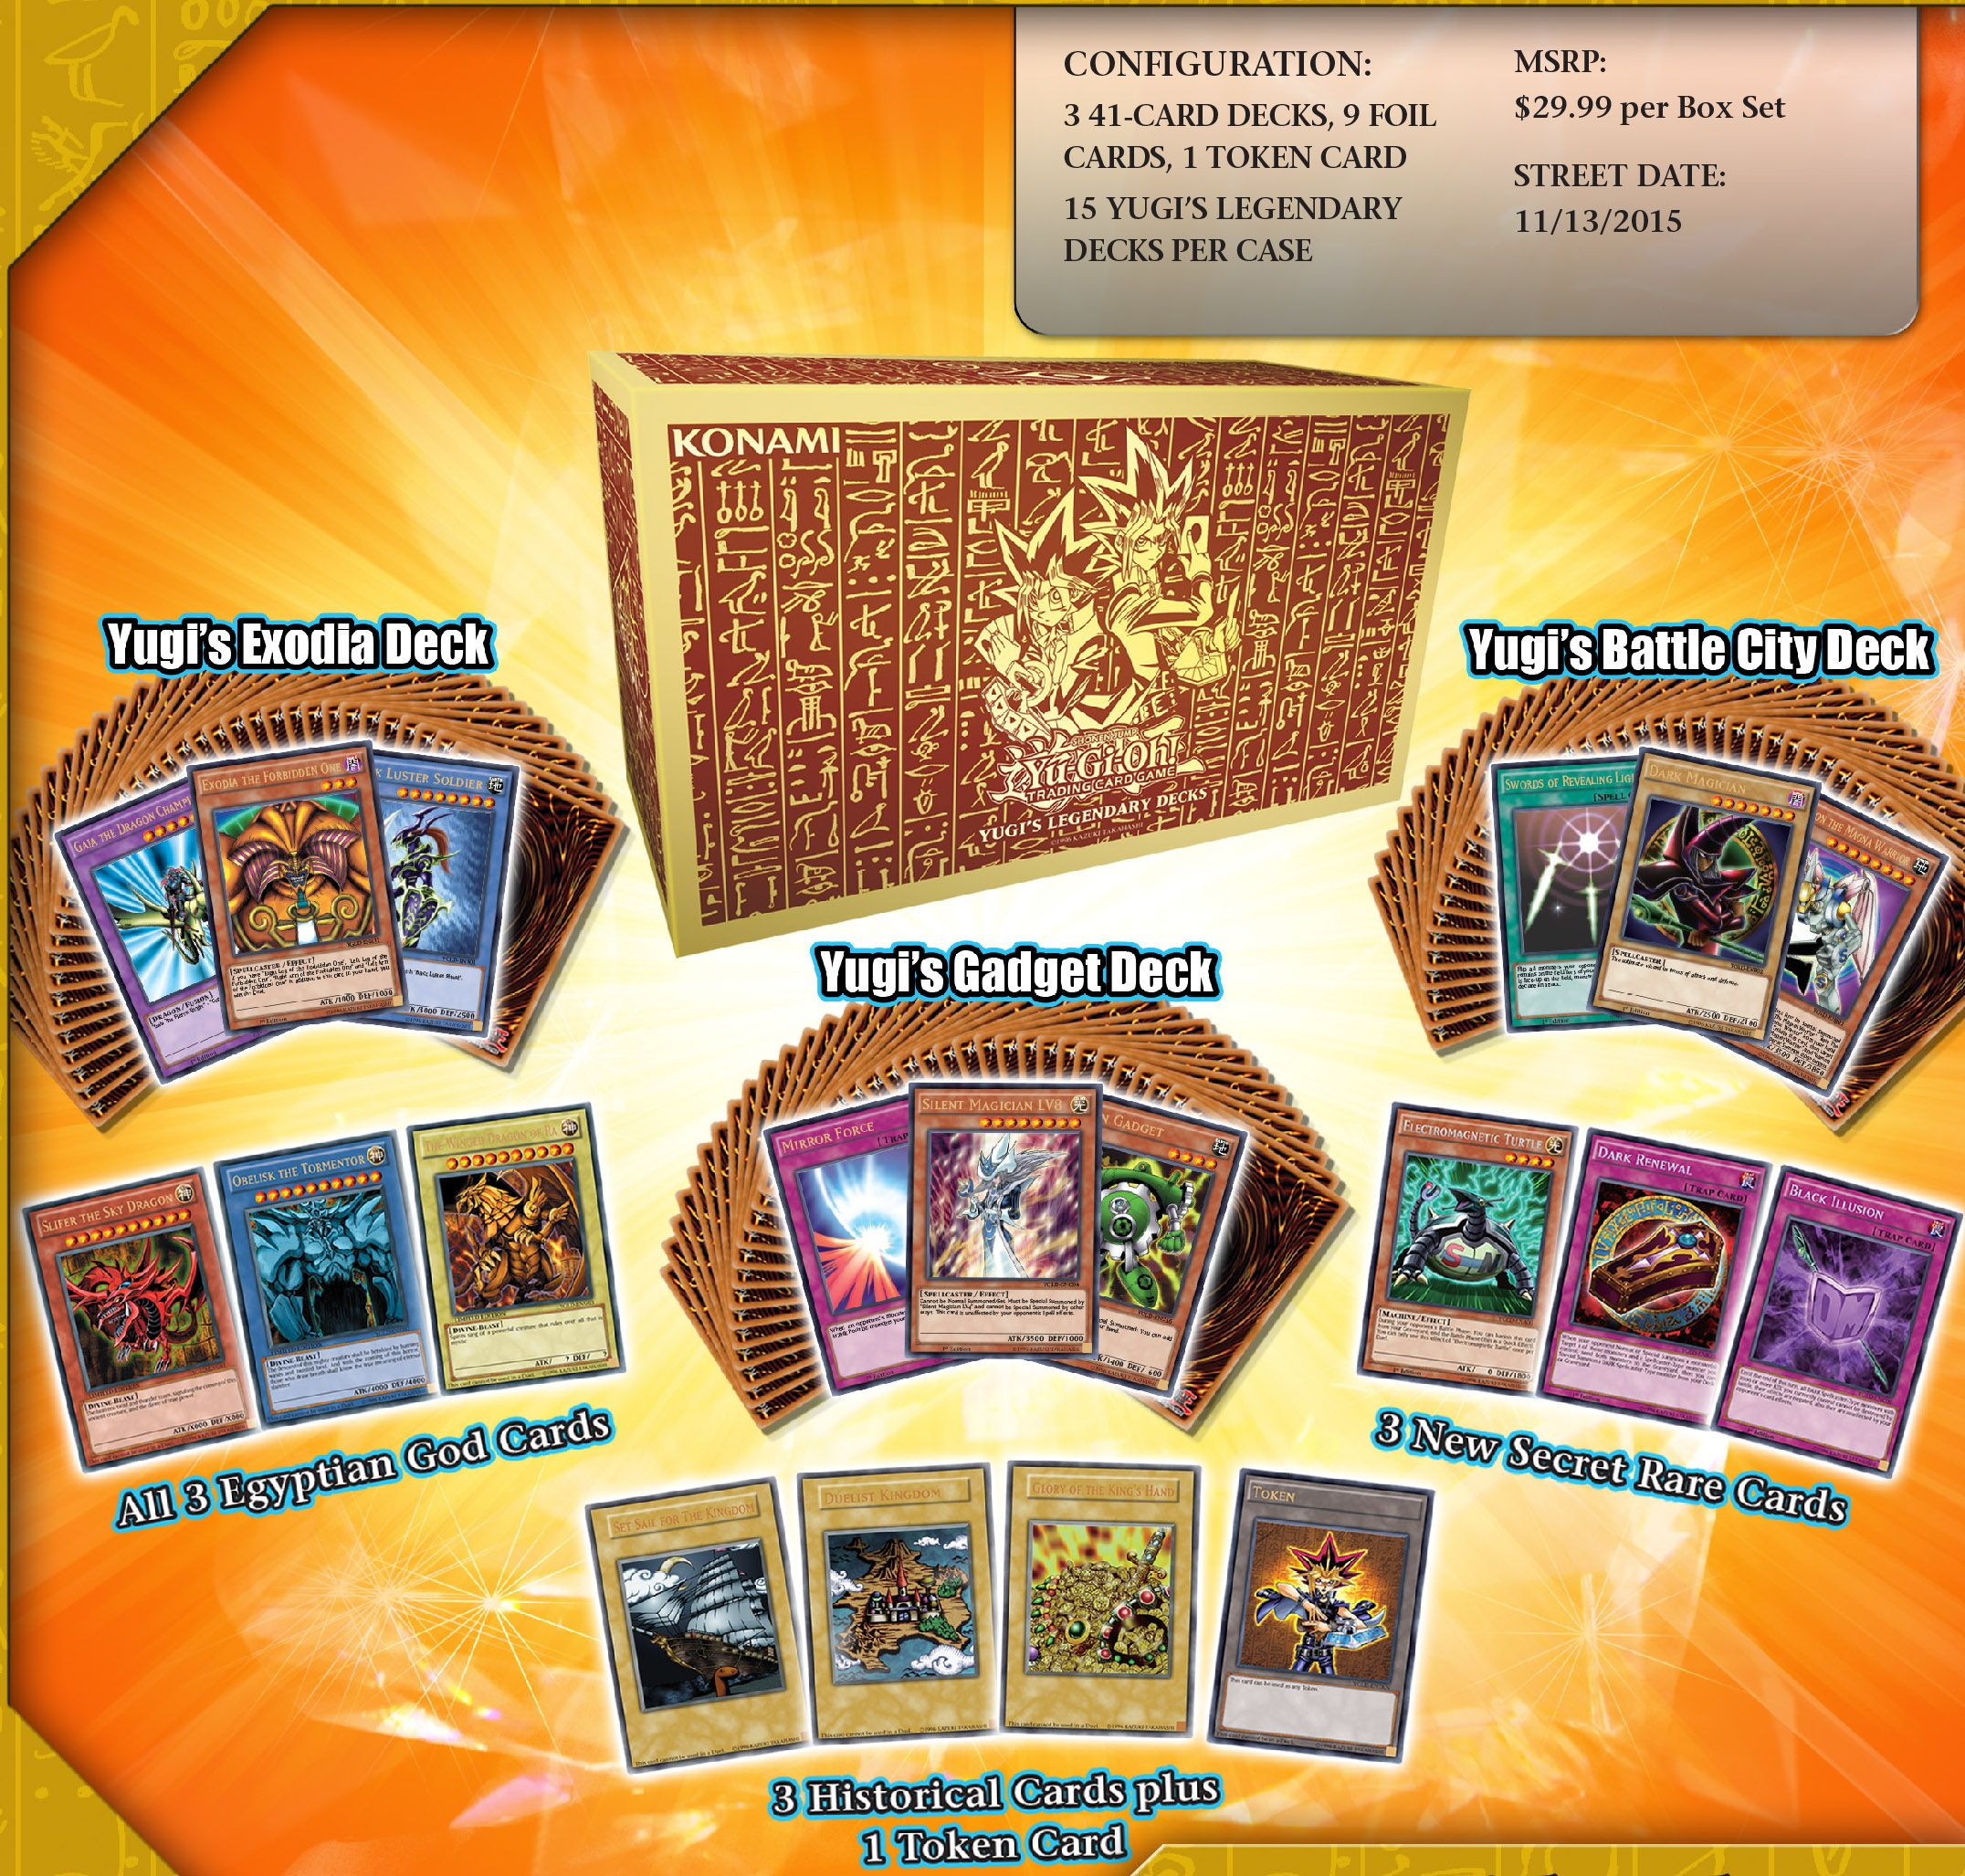 The Yugi S Legendary Decks Are Now Available Become A King Of